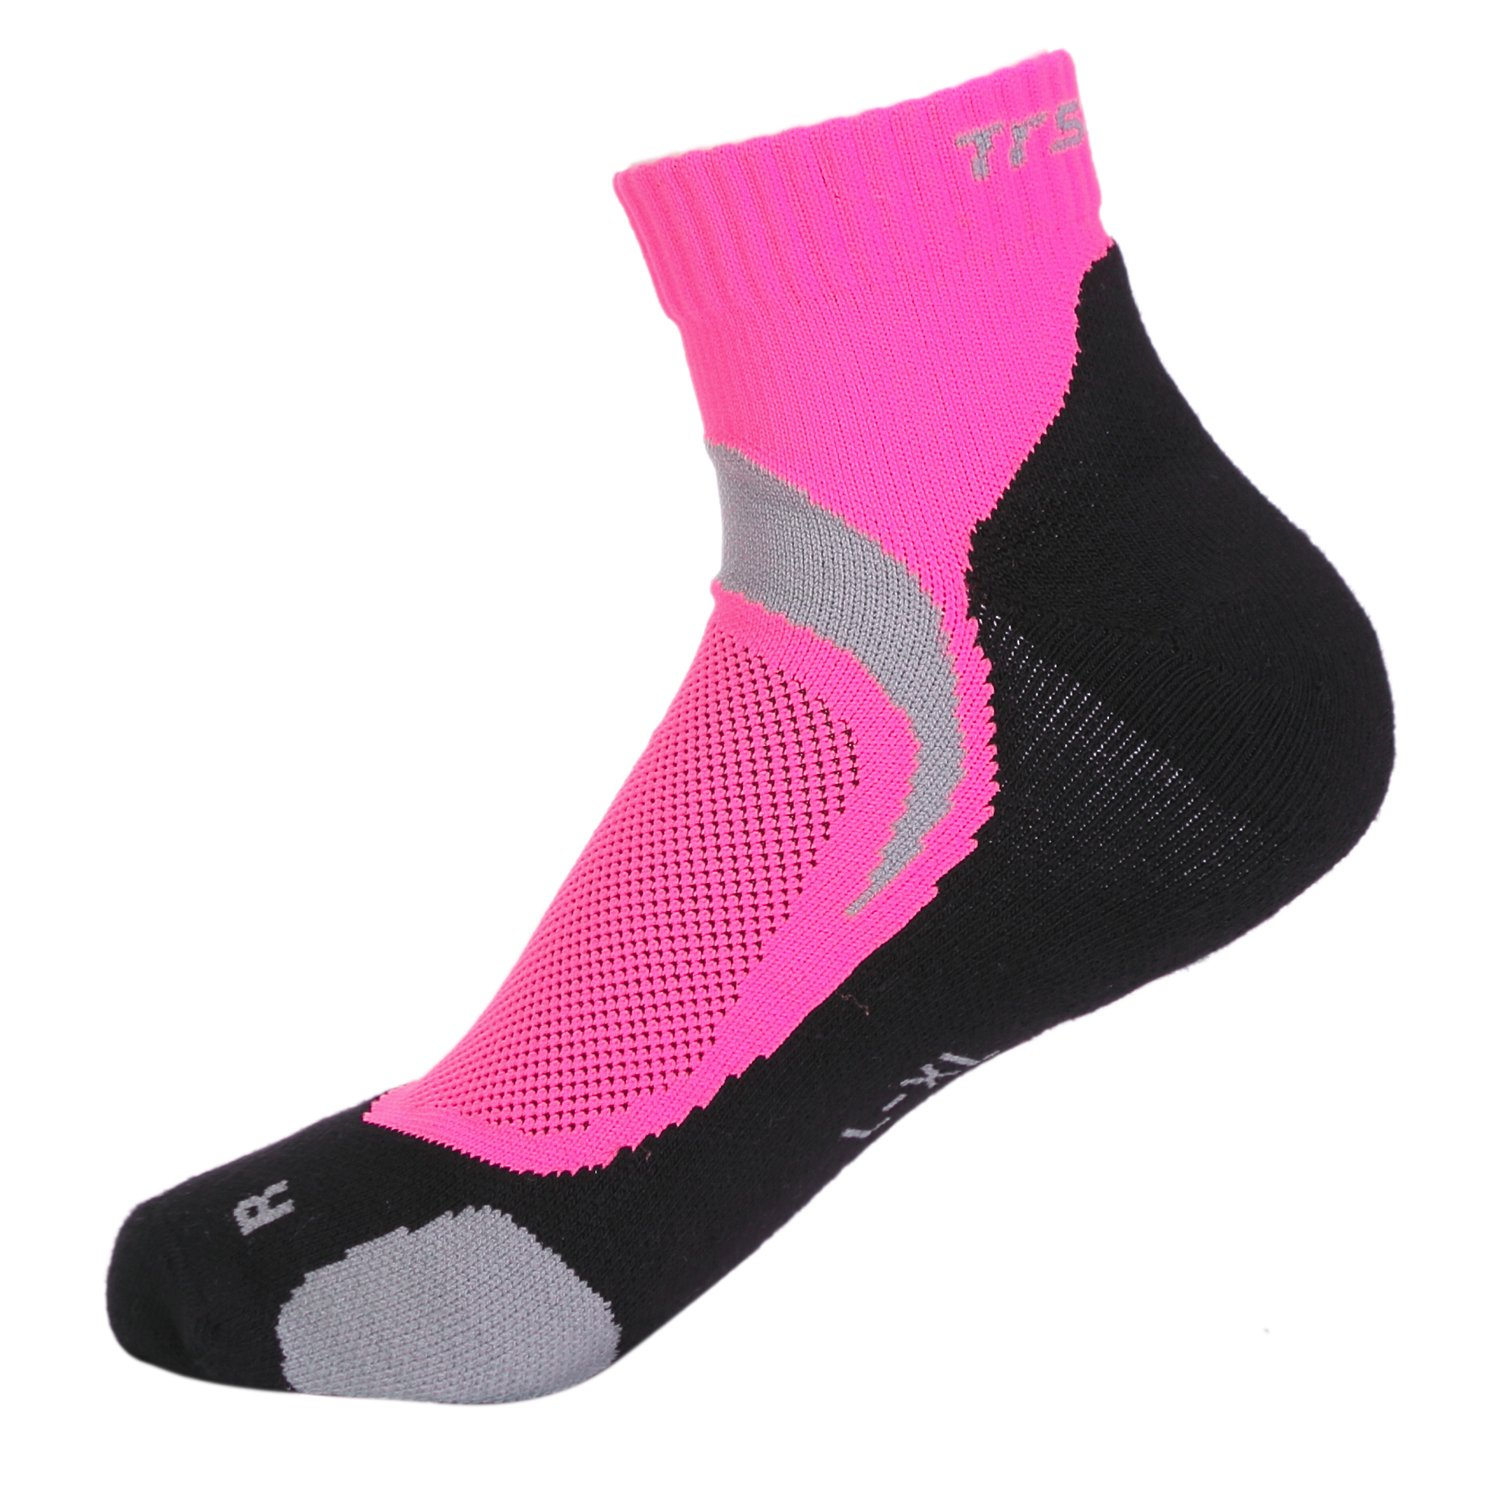 Compression Socks Anklet Low Cut Athletic & Running Socks for Women Pink